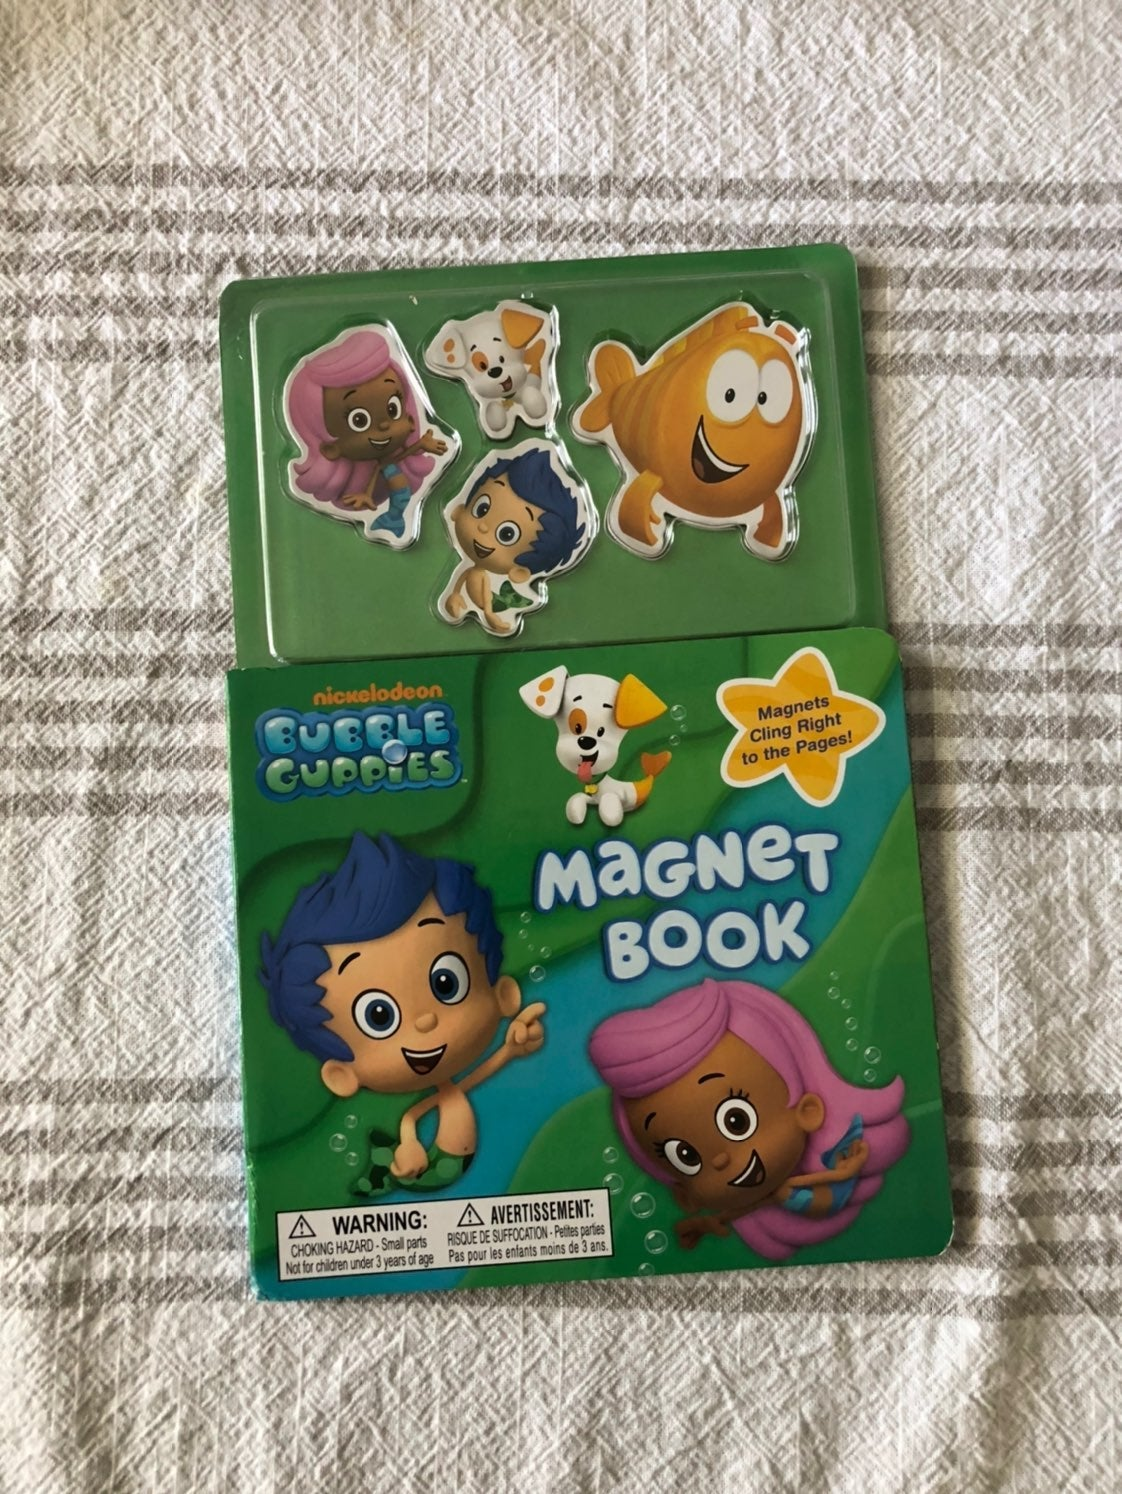 Bubble Guppies Magnet Book